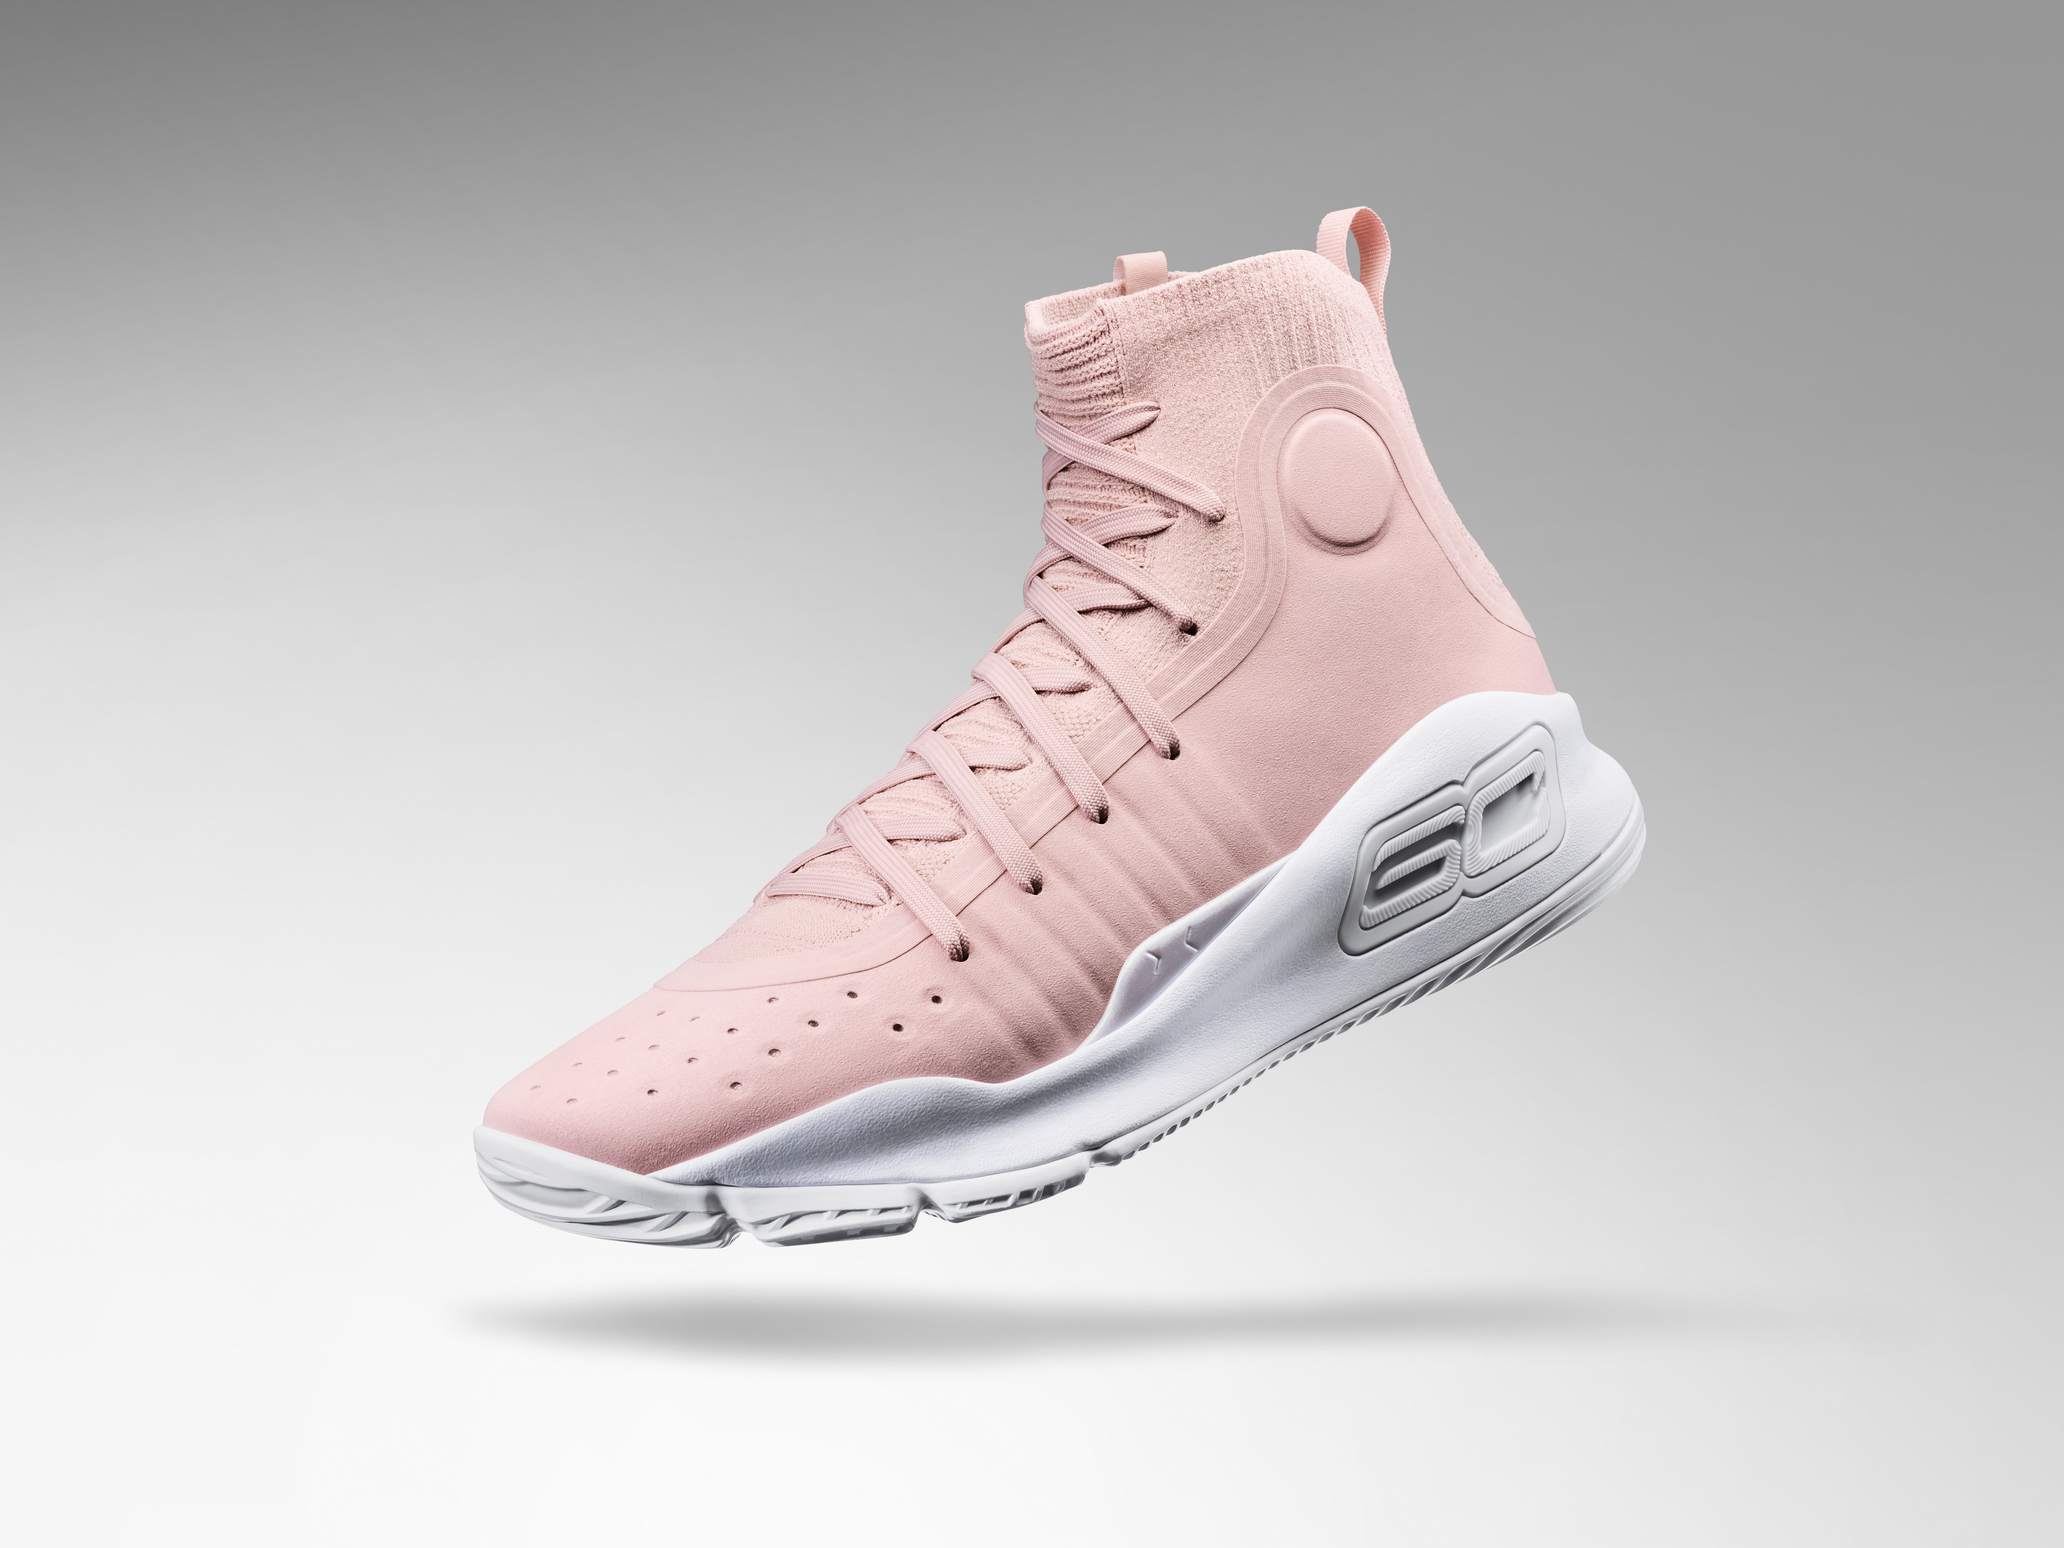 Under Armour Curry 4 Flushed Pink 3